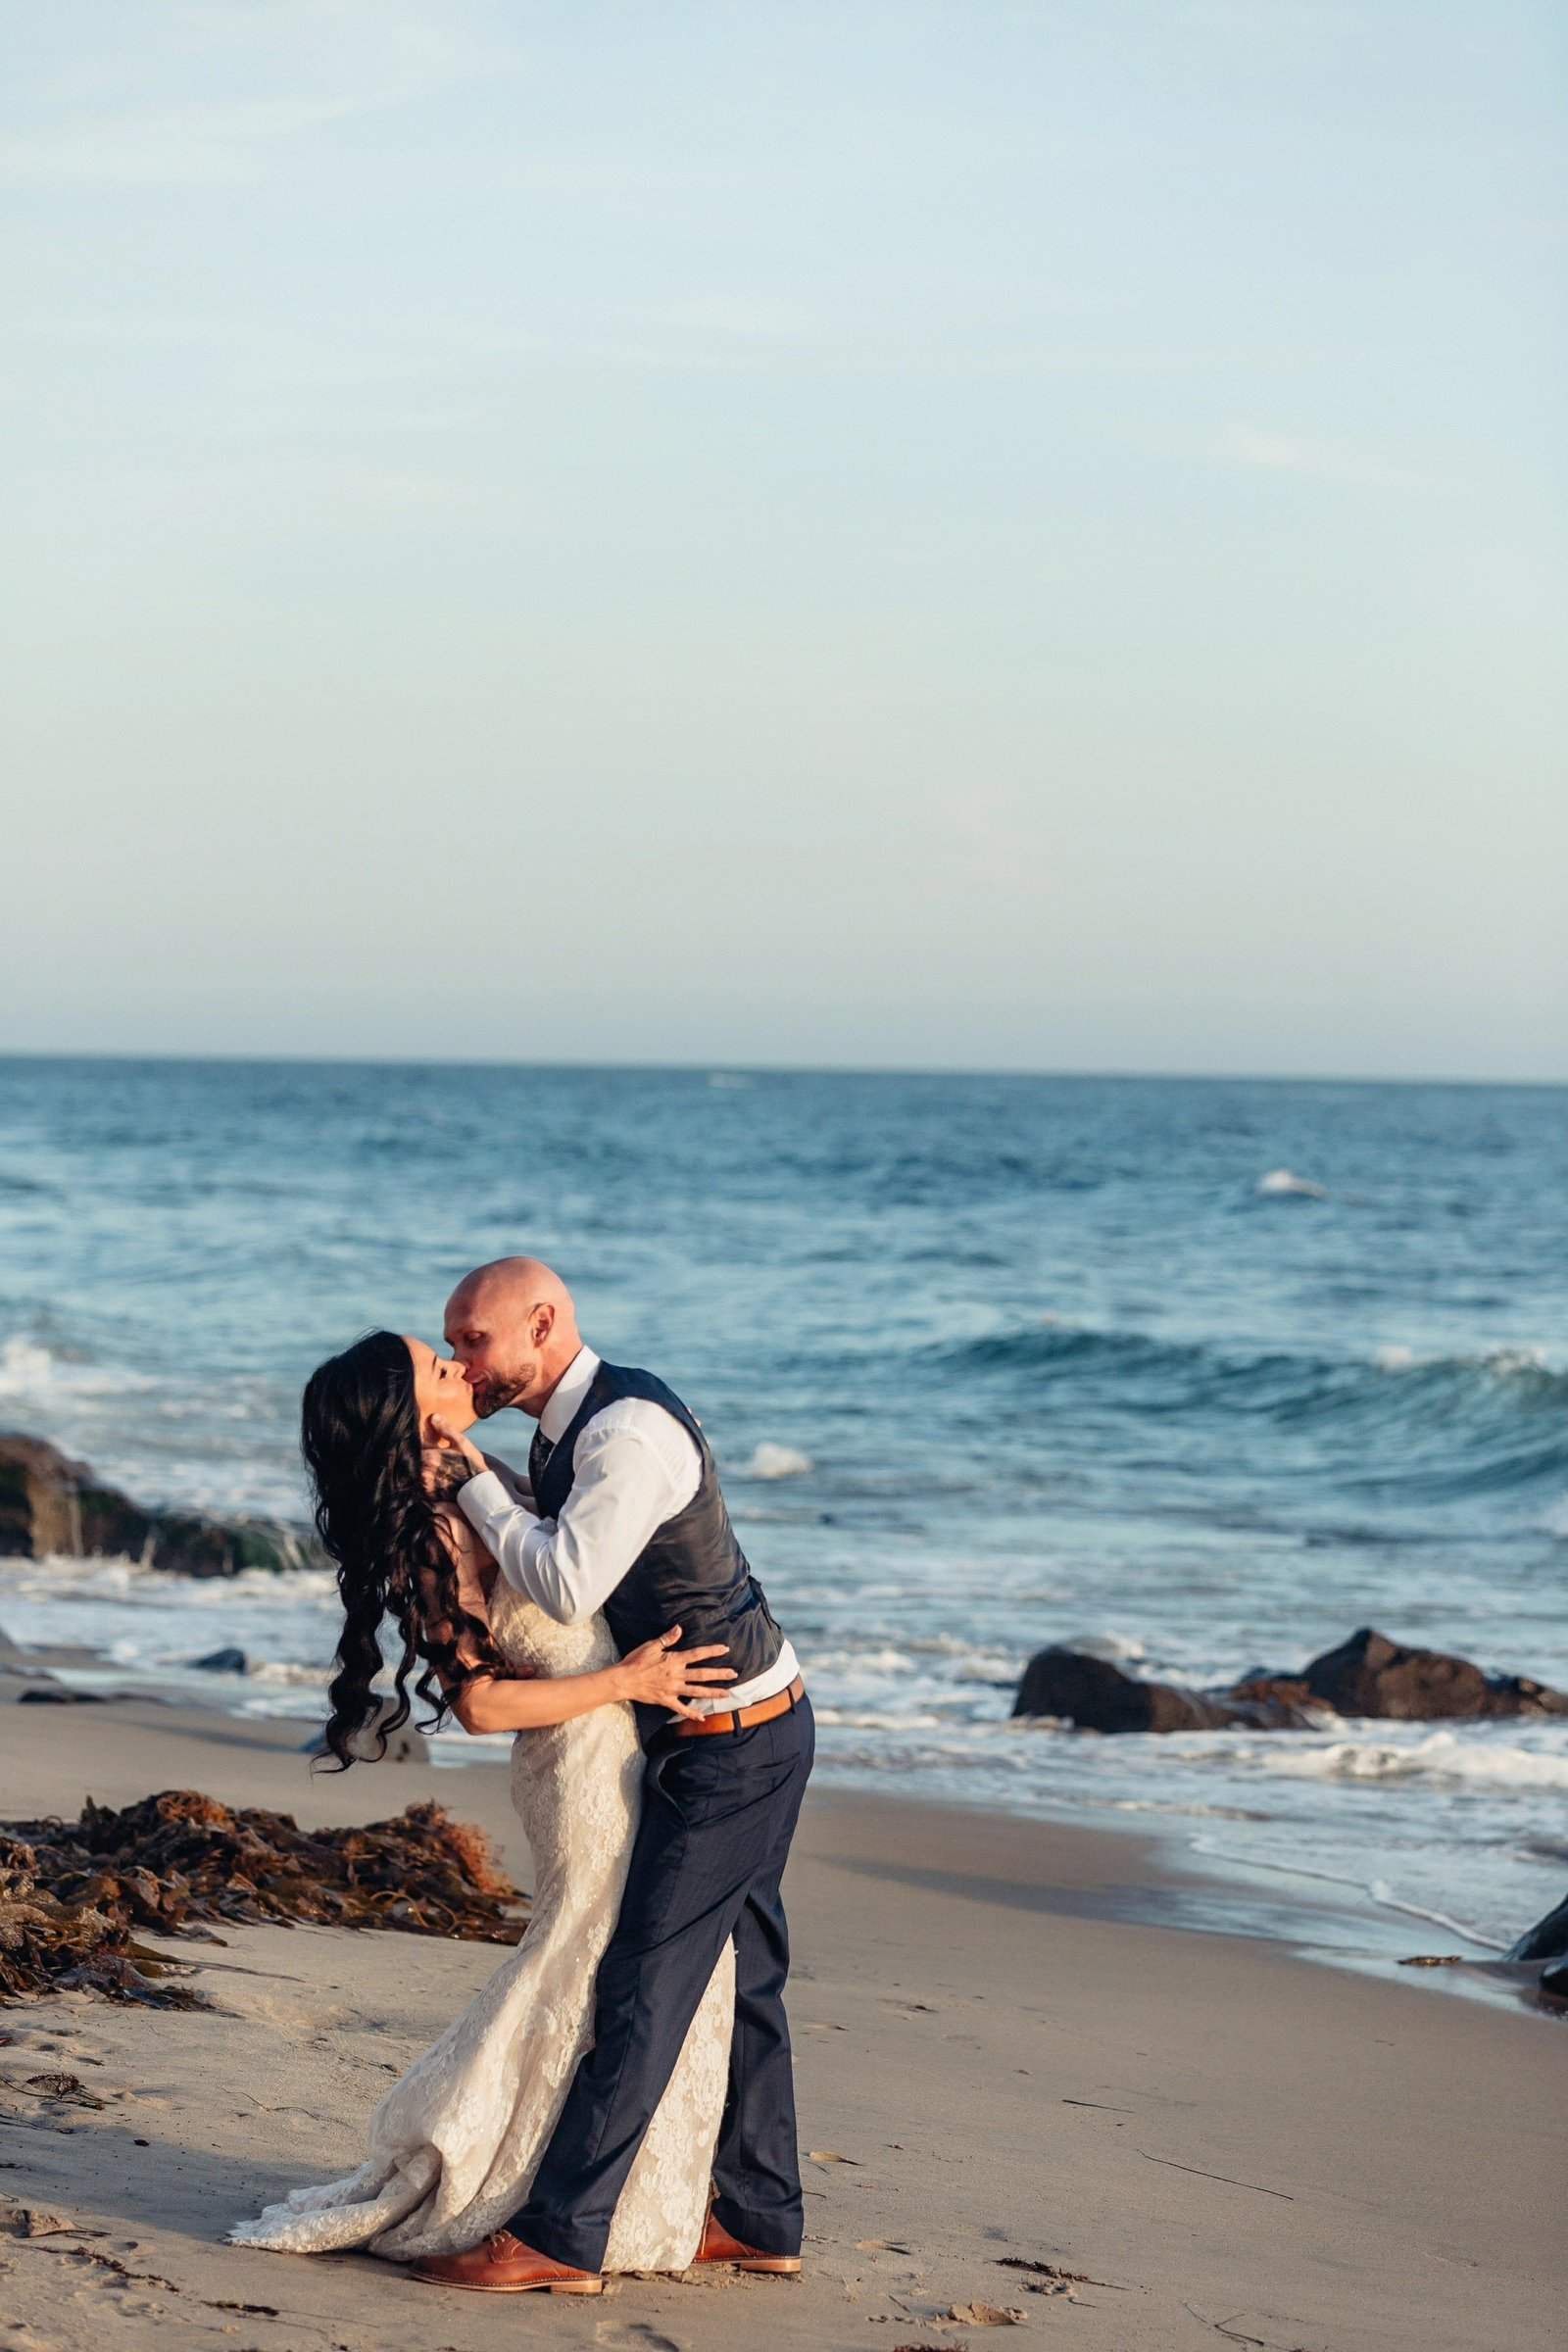 741hotel-laguna-beach-wedding64